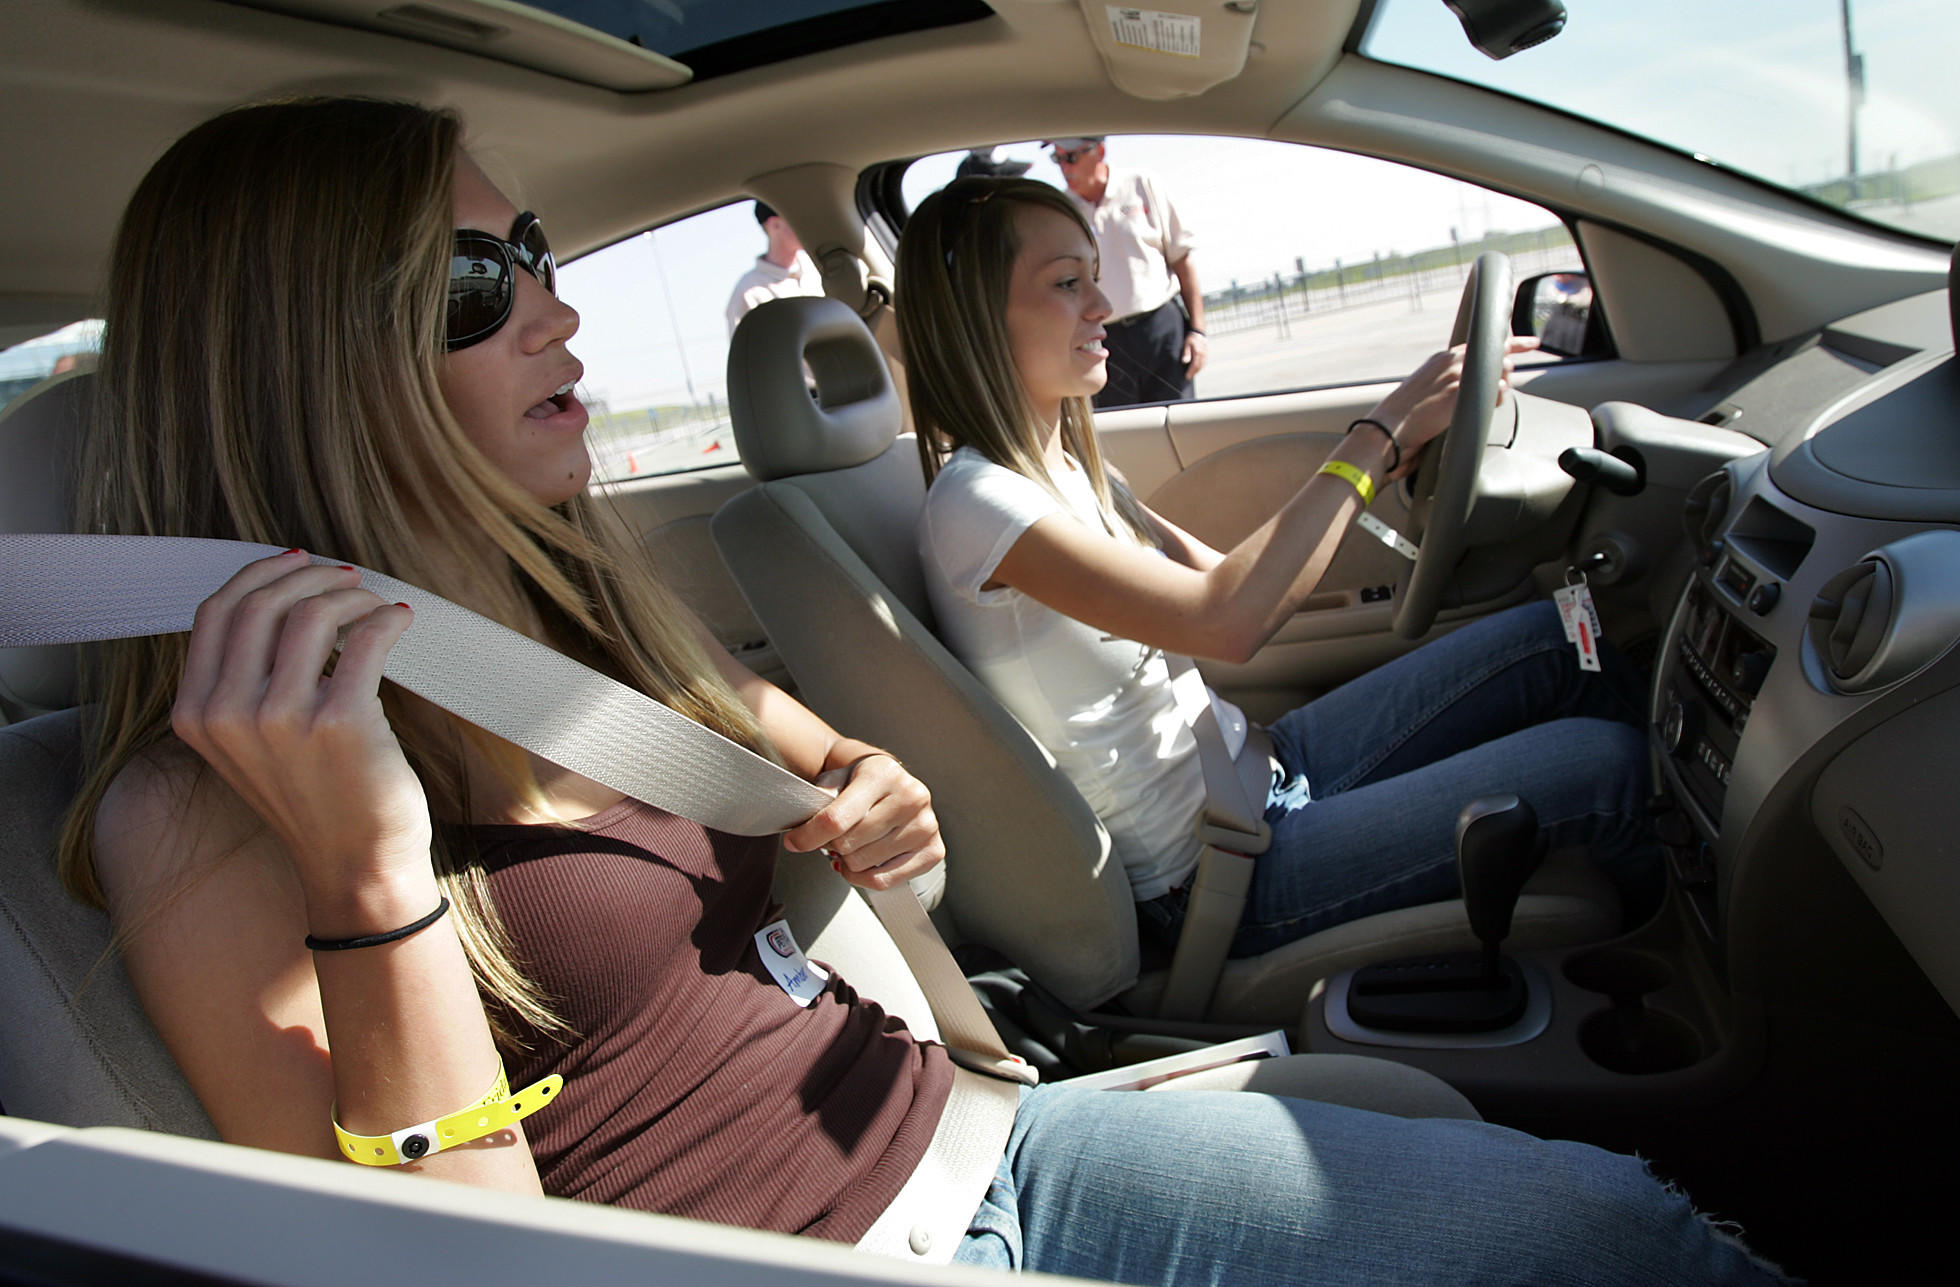 """Amber Crutchfield 18, (l to r) and Megan Nolan 18, belt up and get ready to head out onto the course. Over a dozen high school students took part in a pilot teen safety driving program at Route 66 Raceway in Joliet, Il. Sponsored by the National Safety Council and the Richard Petty Driving Experience School, the students went through a number of hands on driving situations in this first """"Safety Training Awareness for Youth"""" (S.T.A.Y.) program."""